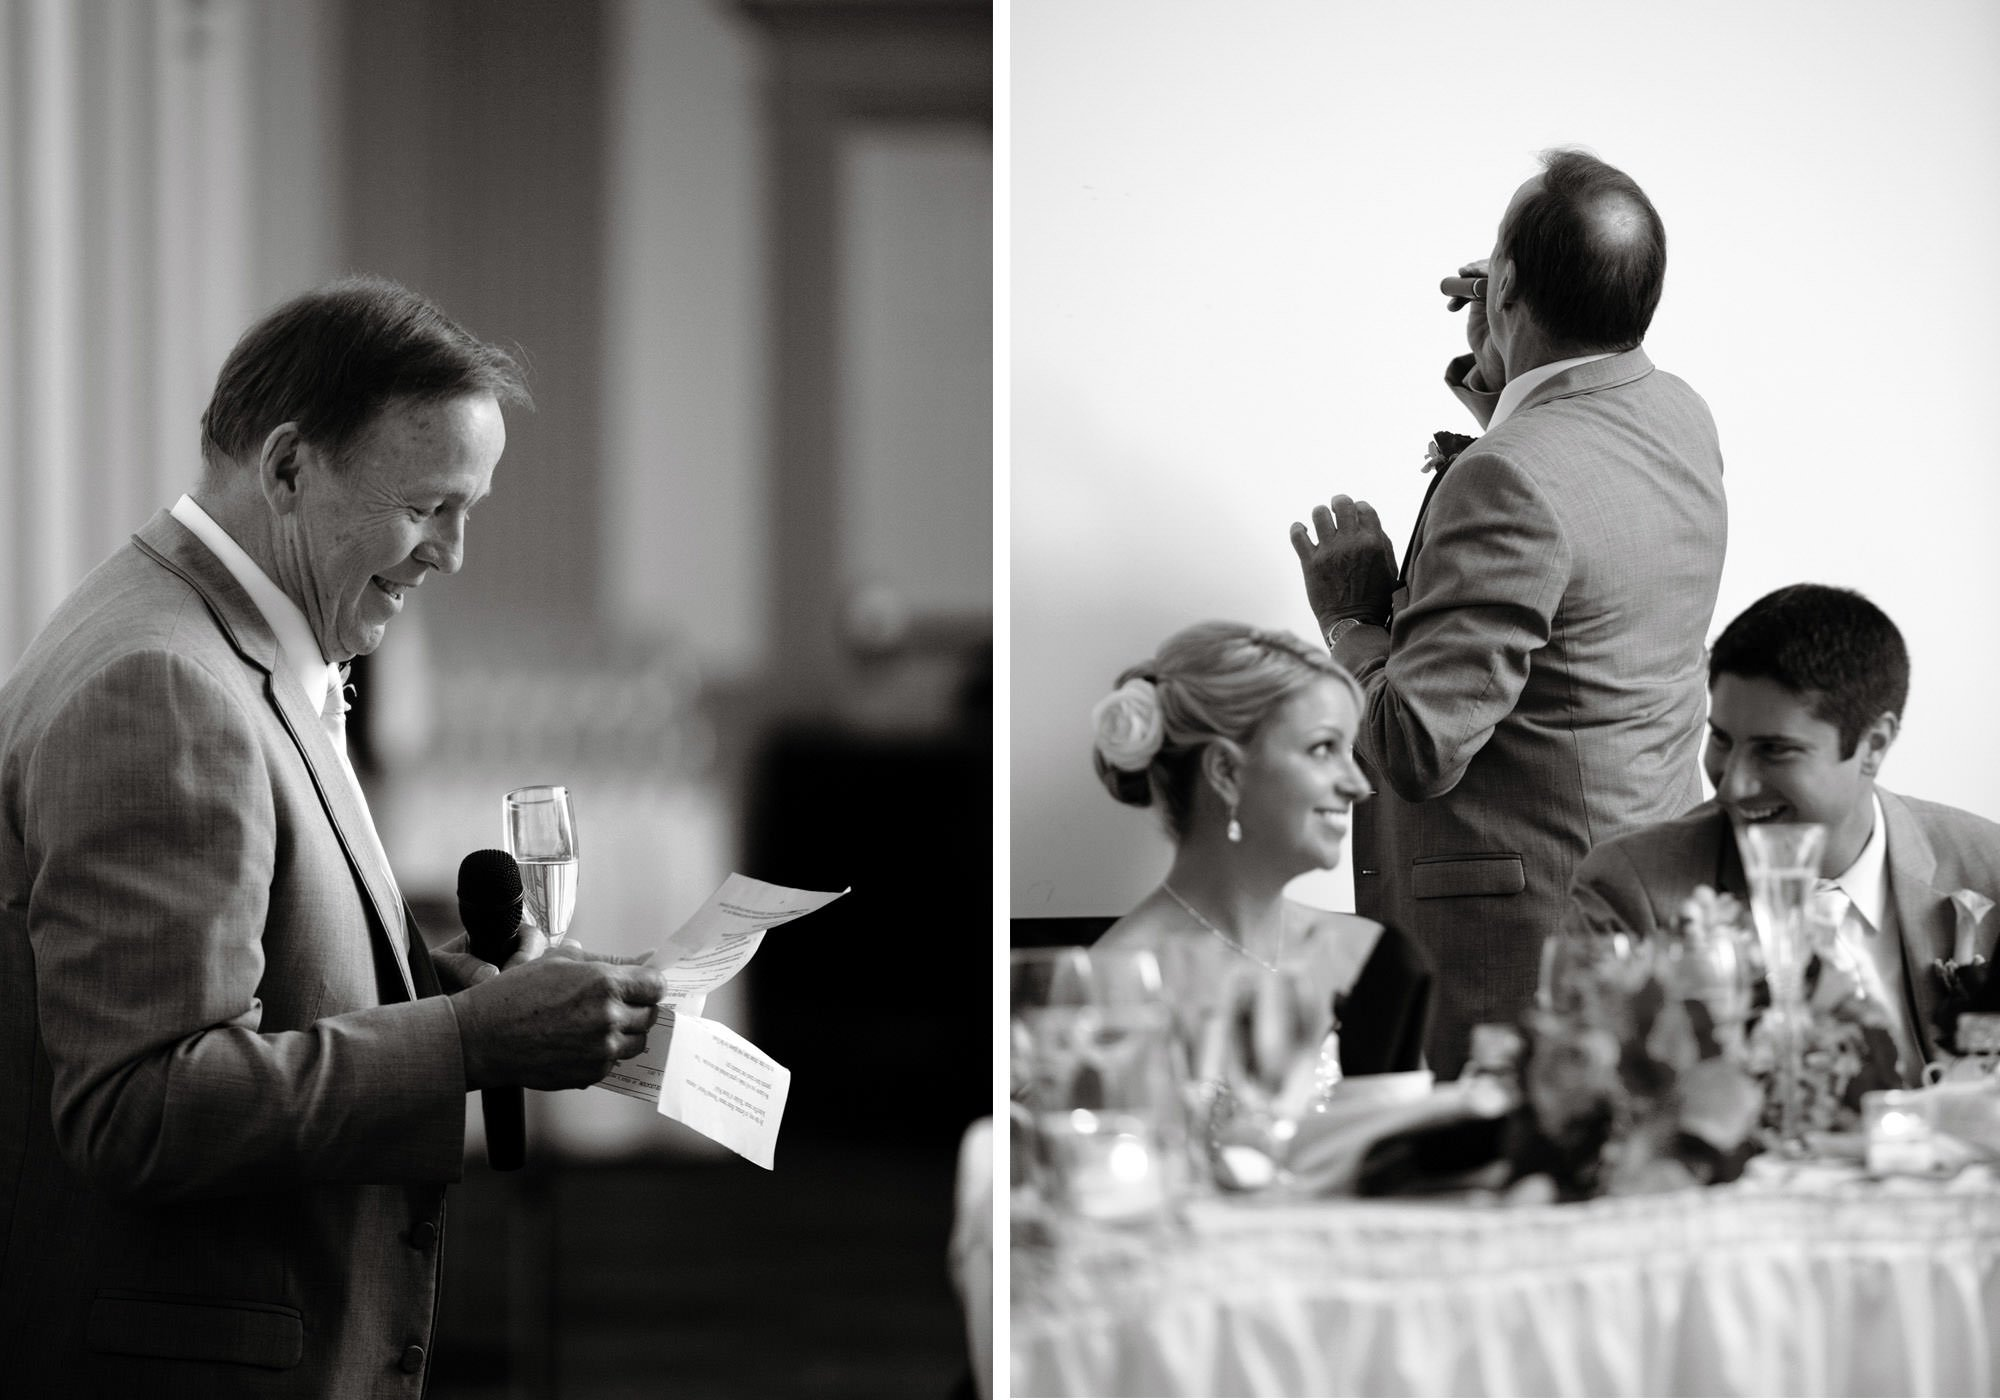 The father of the bride gives a toast during the wedding reception.